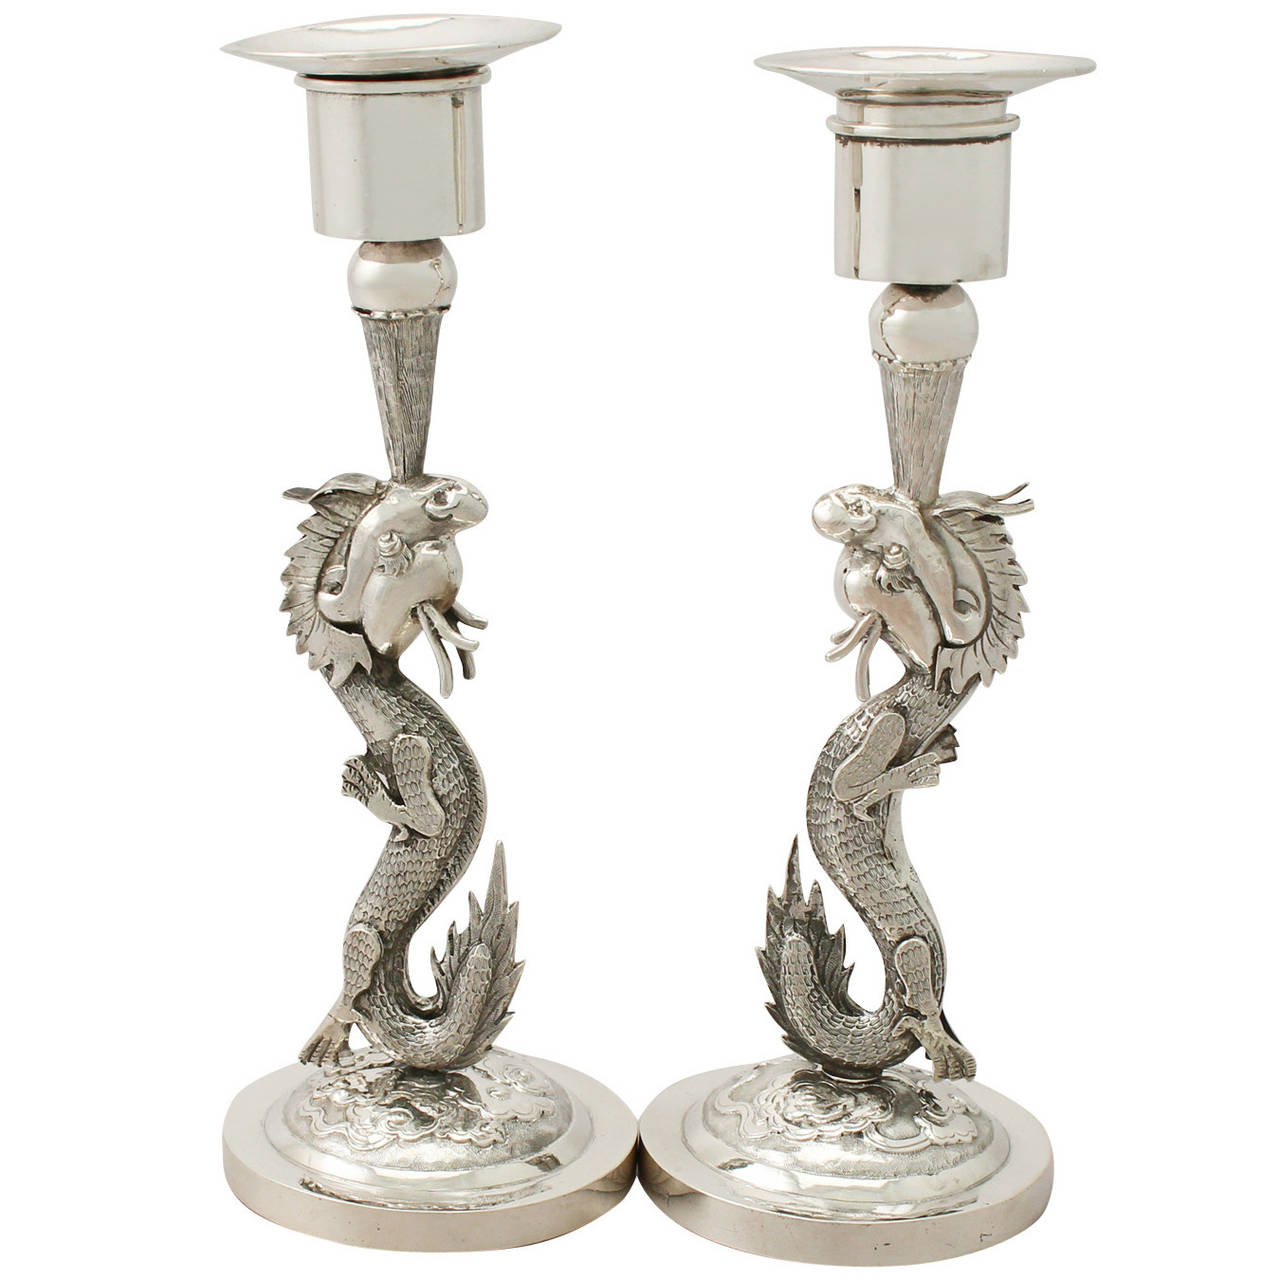 Candlesticks in the form of a fire breathing dragon. ca. 1890.